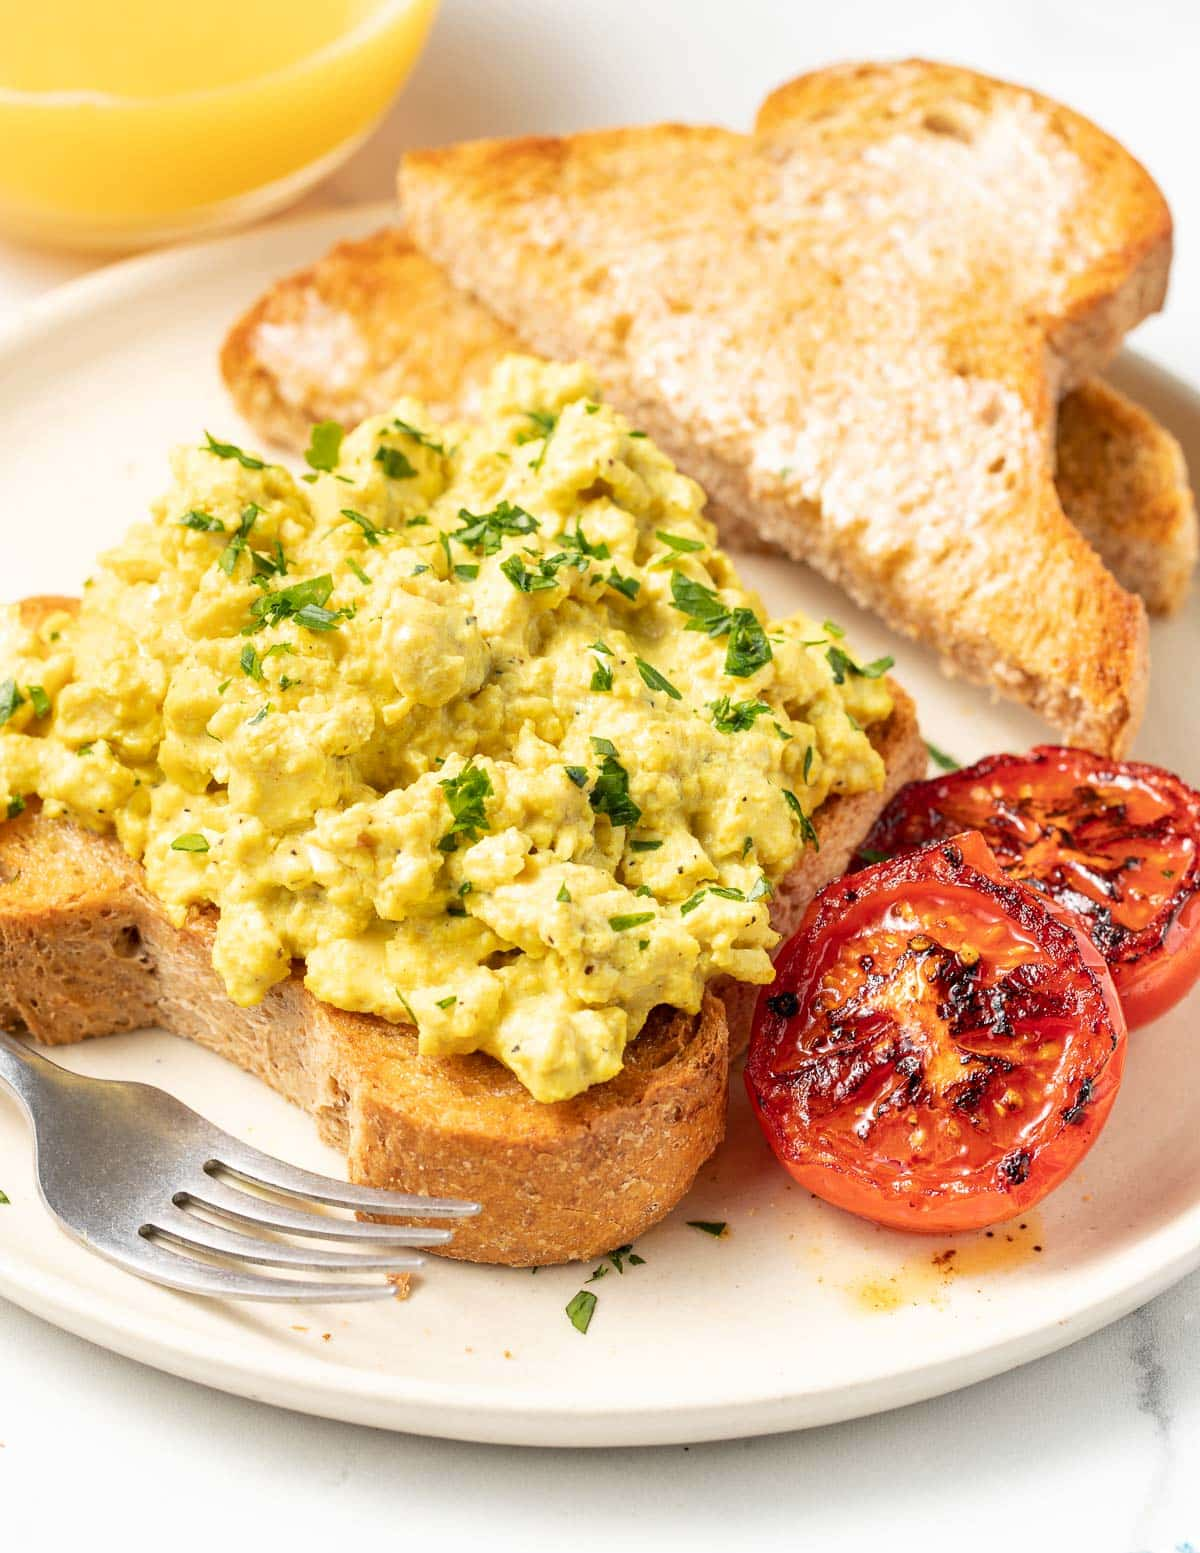 a place of vegan scrambled eggs with tomatoes and a glass of orange juice